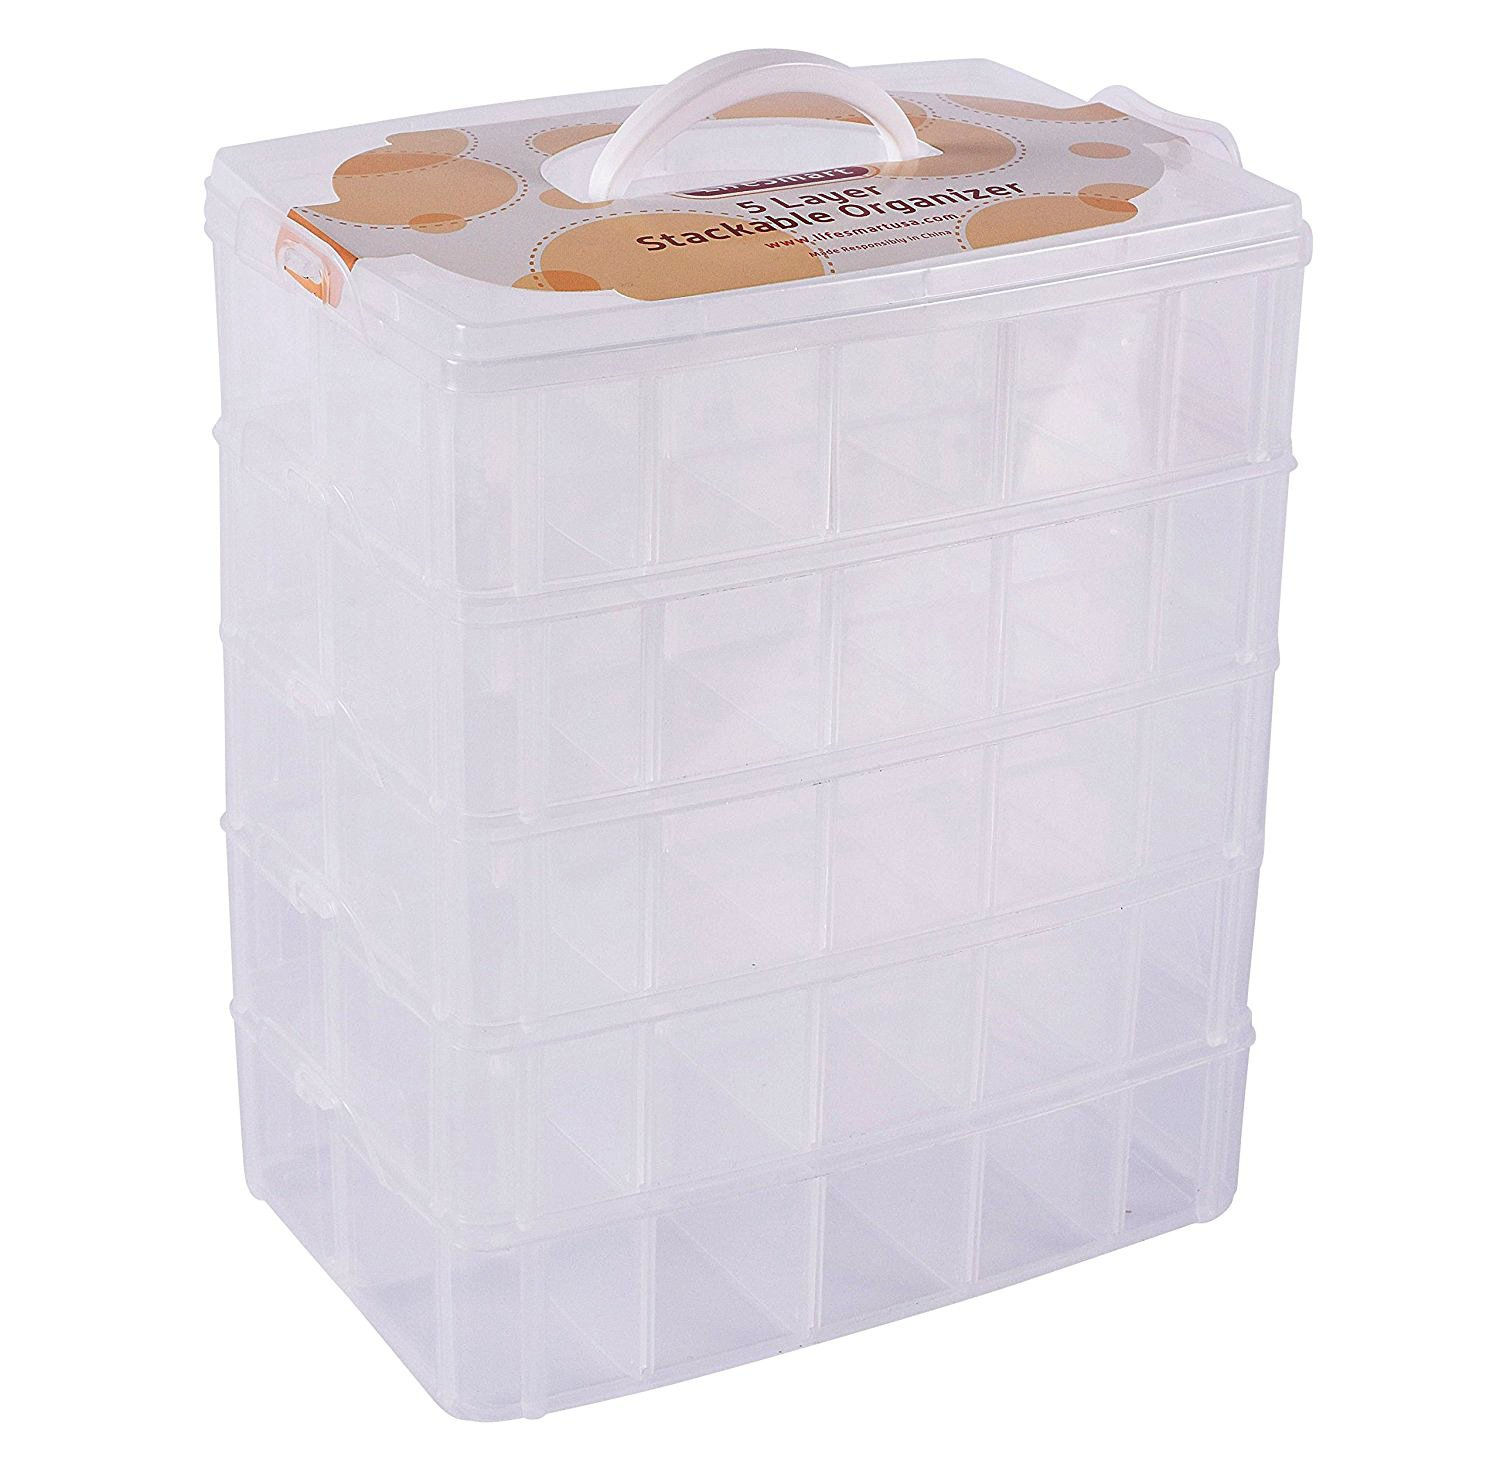 LifeSmart USA Stackable Storage Container Clear - 50 Adjustable Compartments - Store More Than Other Cases - Lego Dimensions - Shopkins - Littlest Pet Shop - Arts and Crafts- Piping Tips - and More!